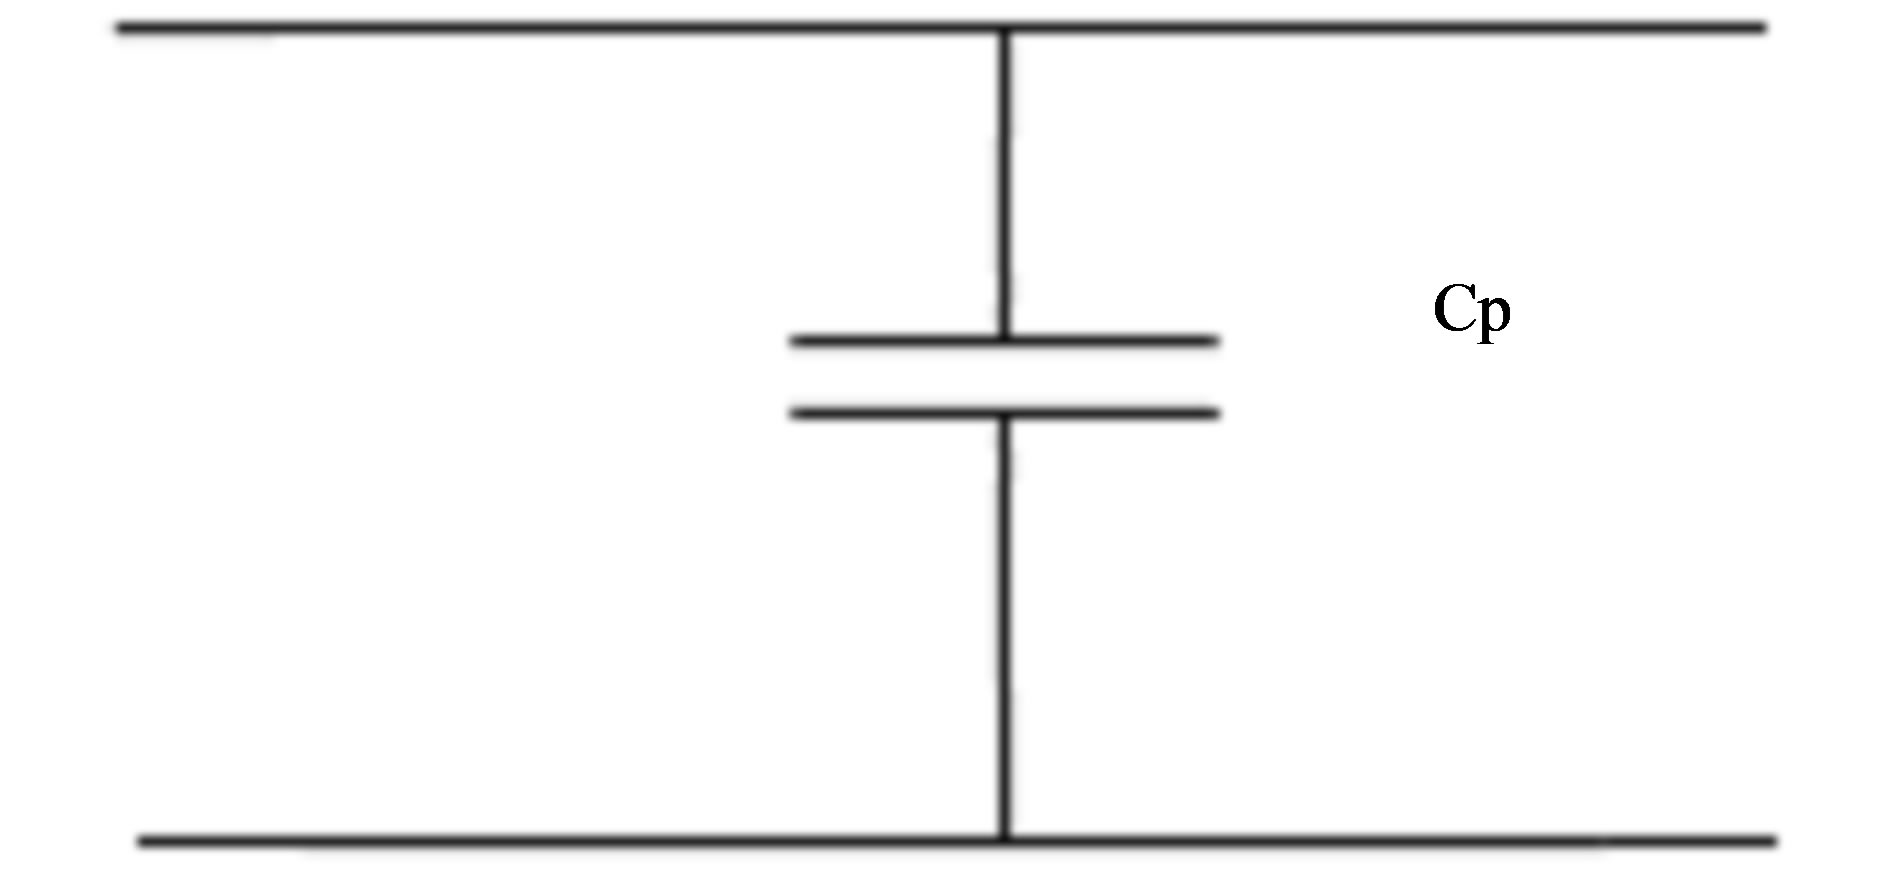 Tvs Diode Symbol Gallery - Symbol and Sign Ideas